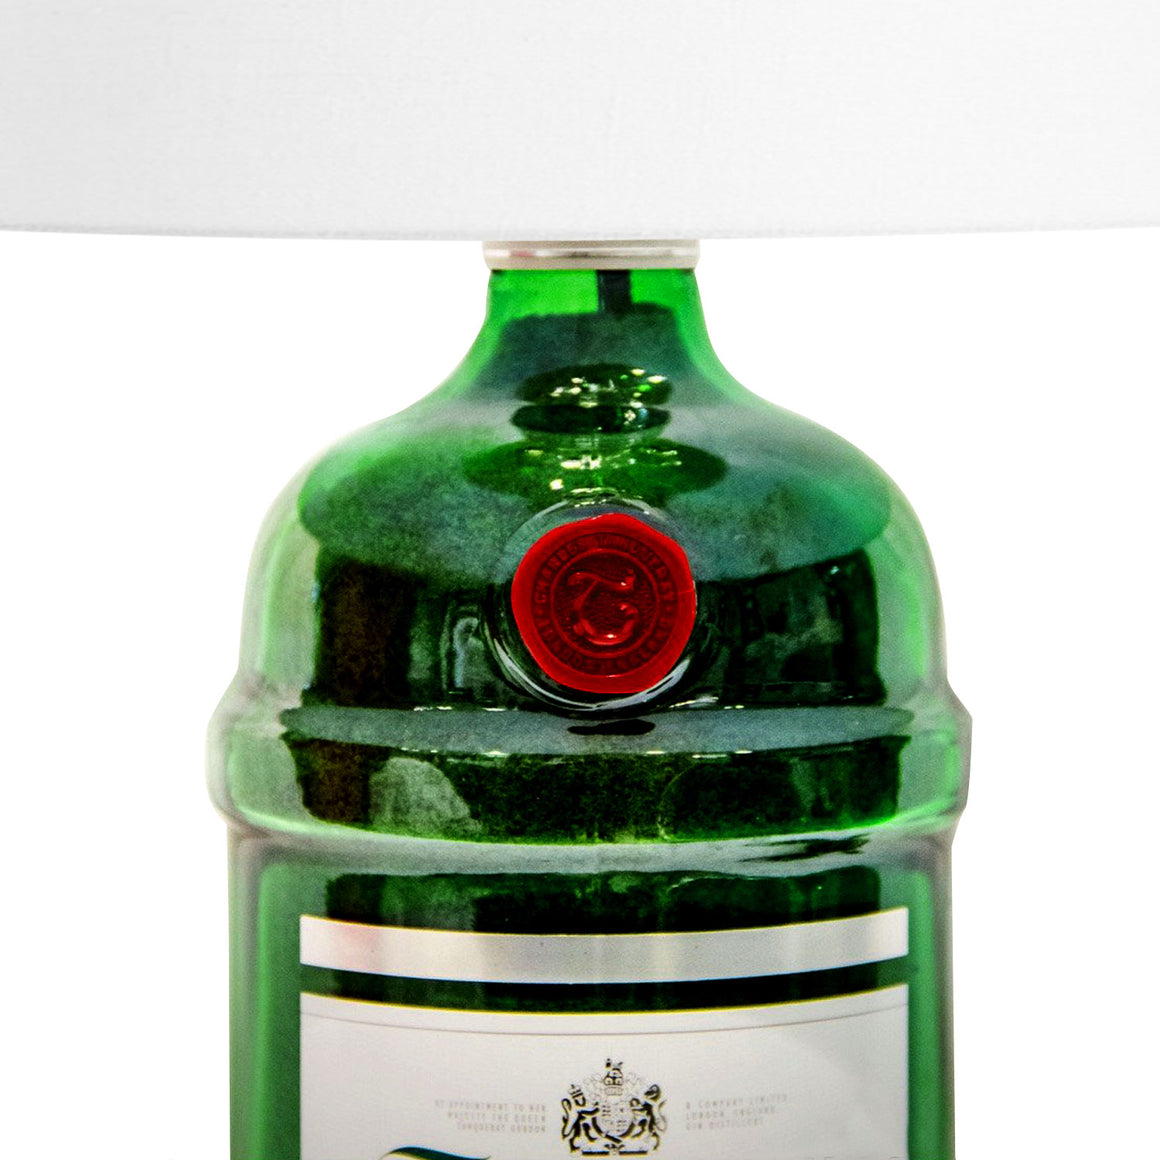 'TANQUERAY LIQUOR' Bottle Lamp